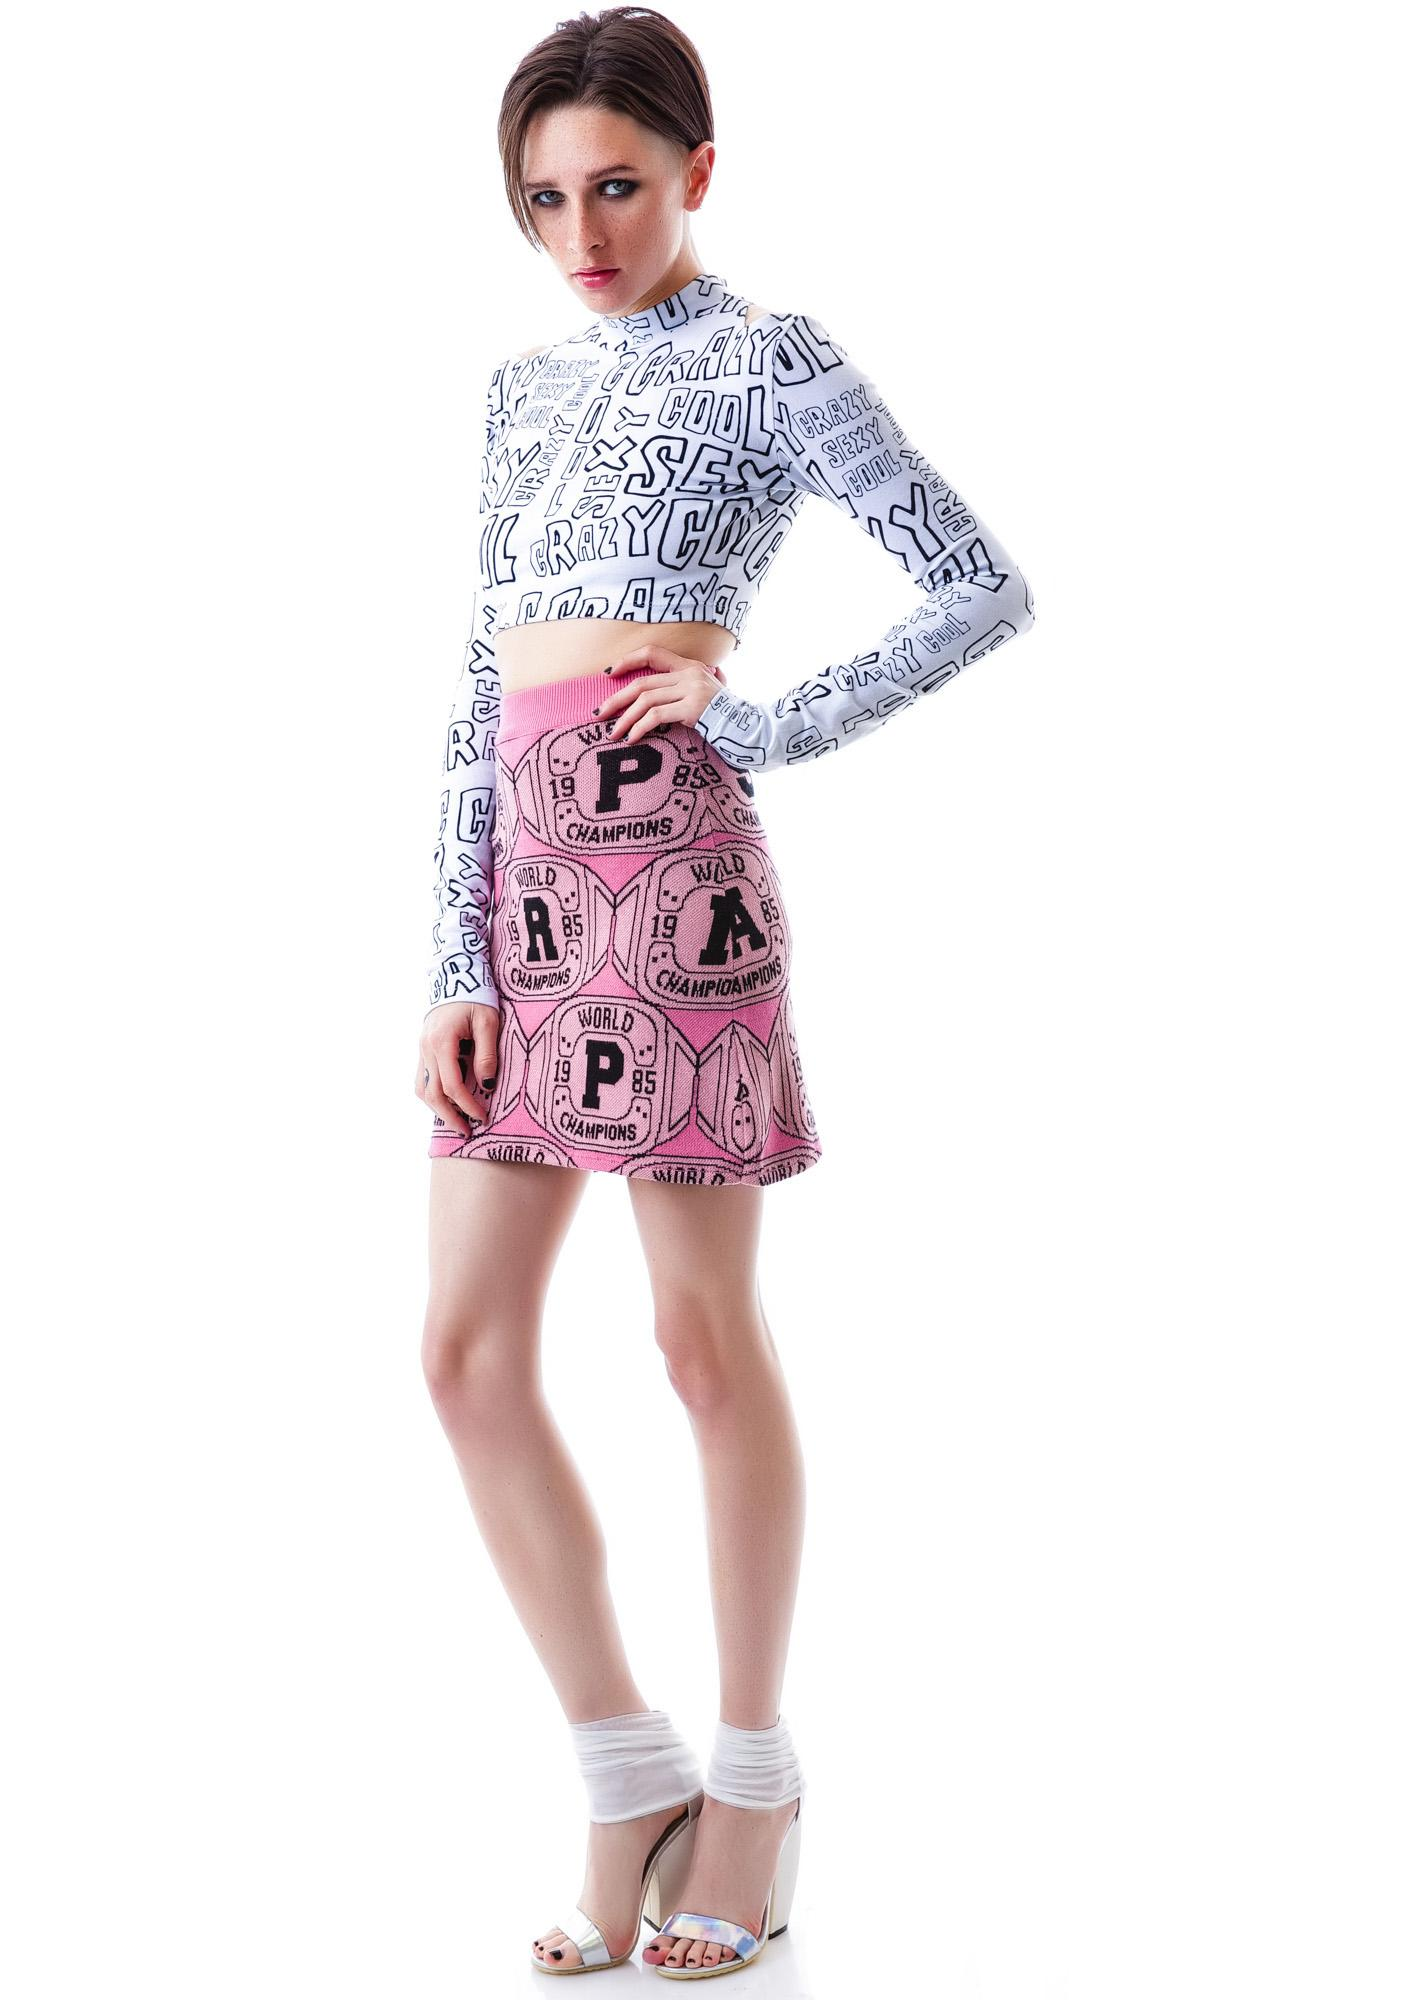 Joyrich Paris Champ Knit Skirt